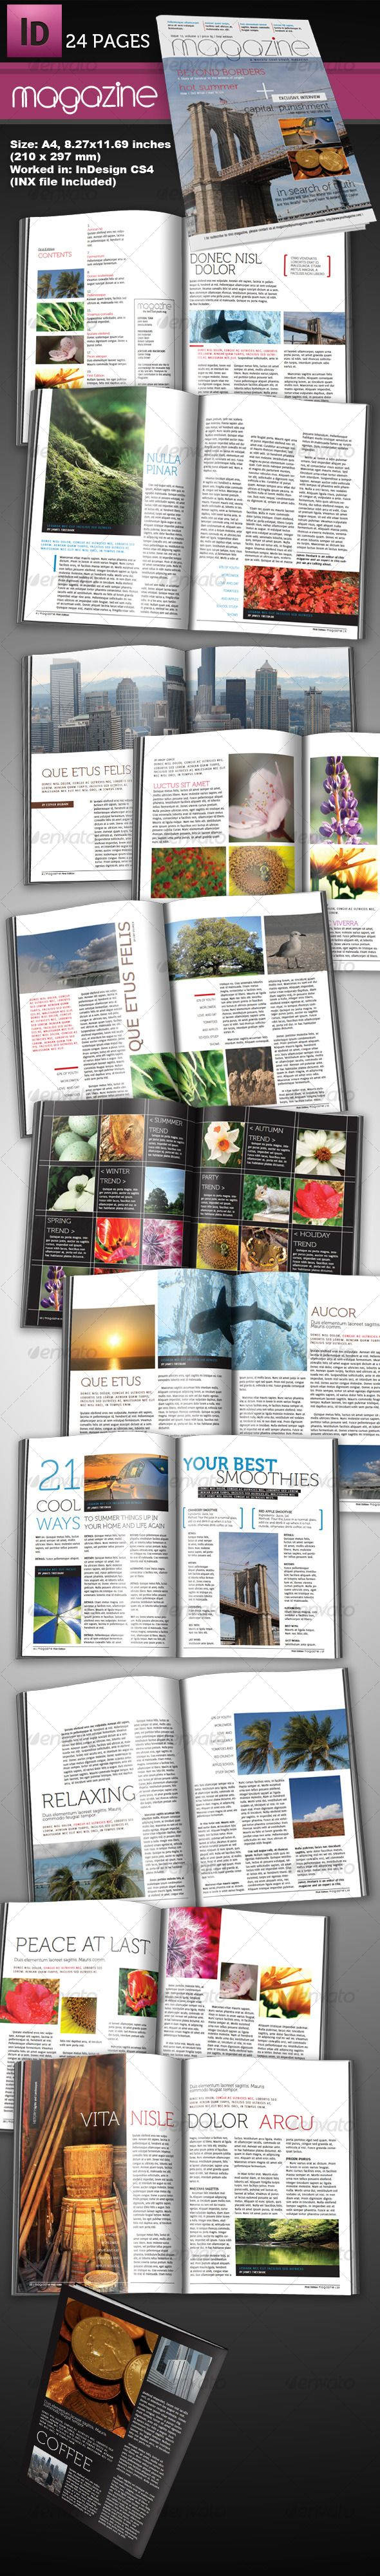 24 page indesign magazine a4 | print templates, magazines and template, Powerpoint templates